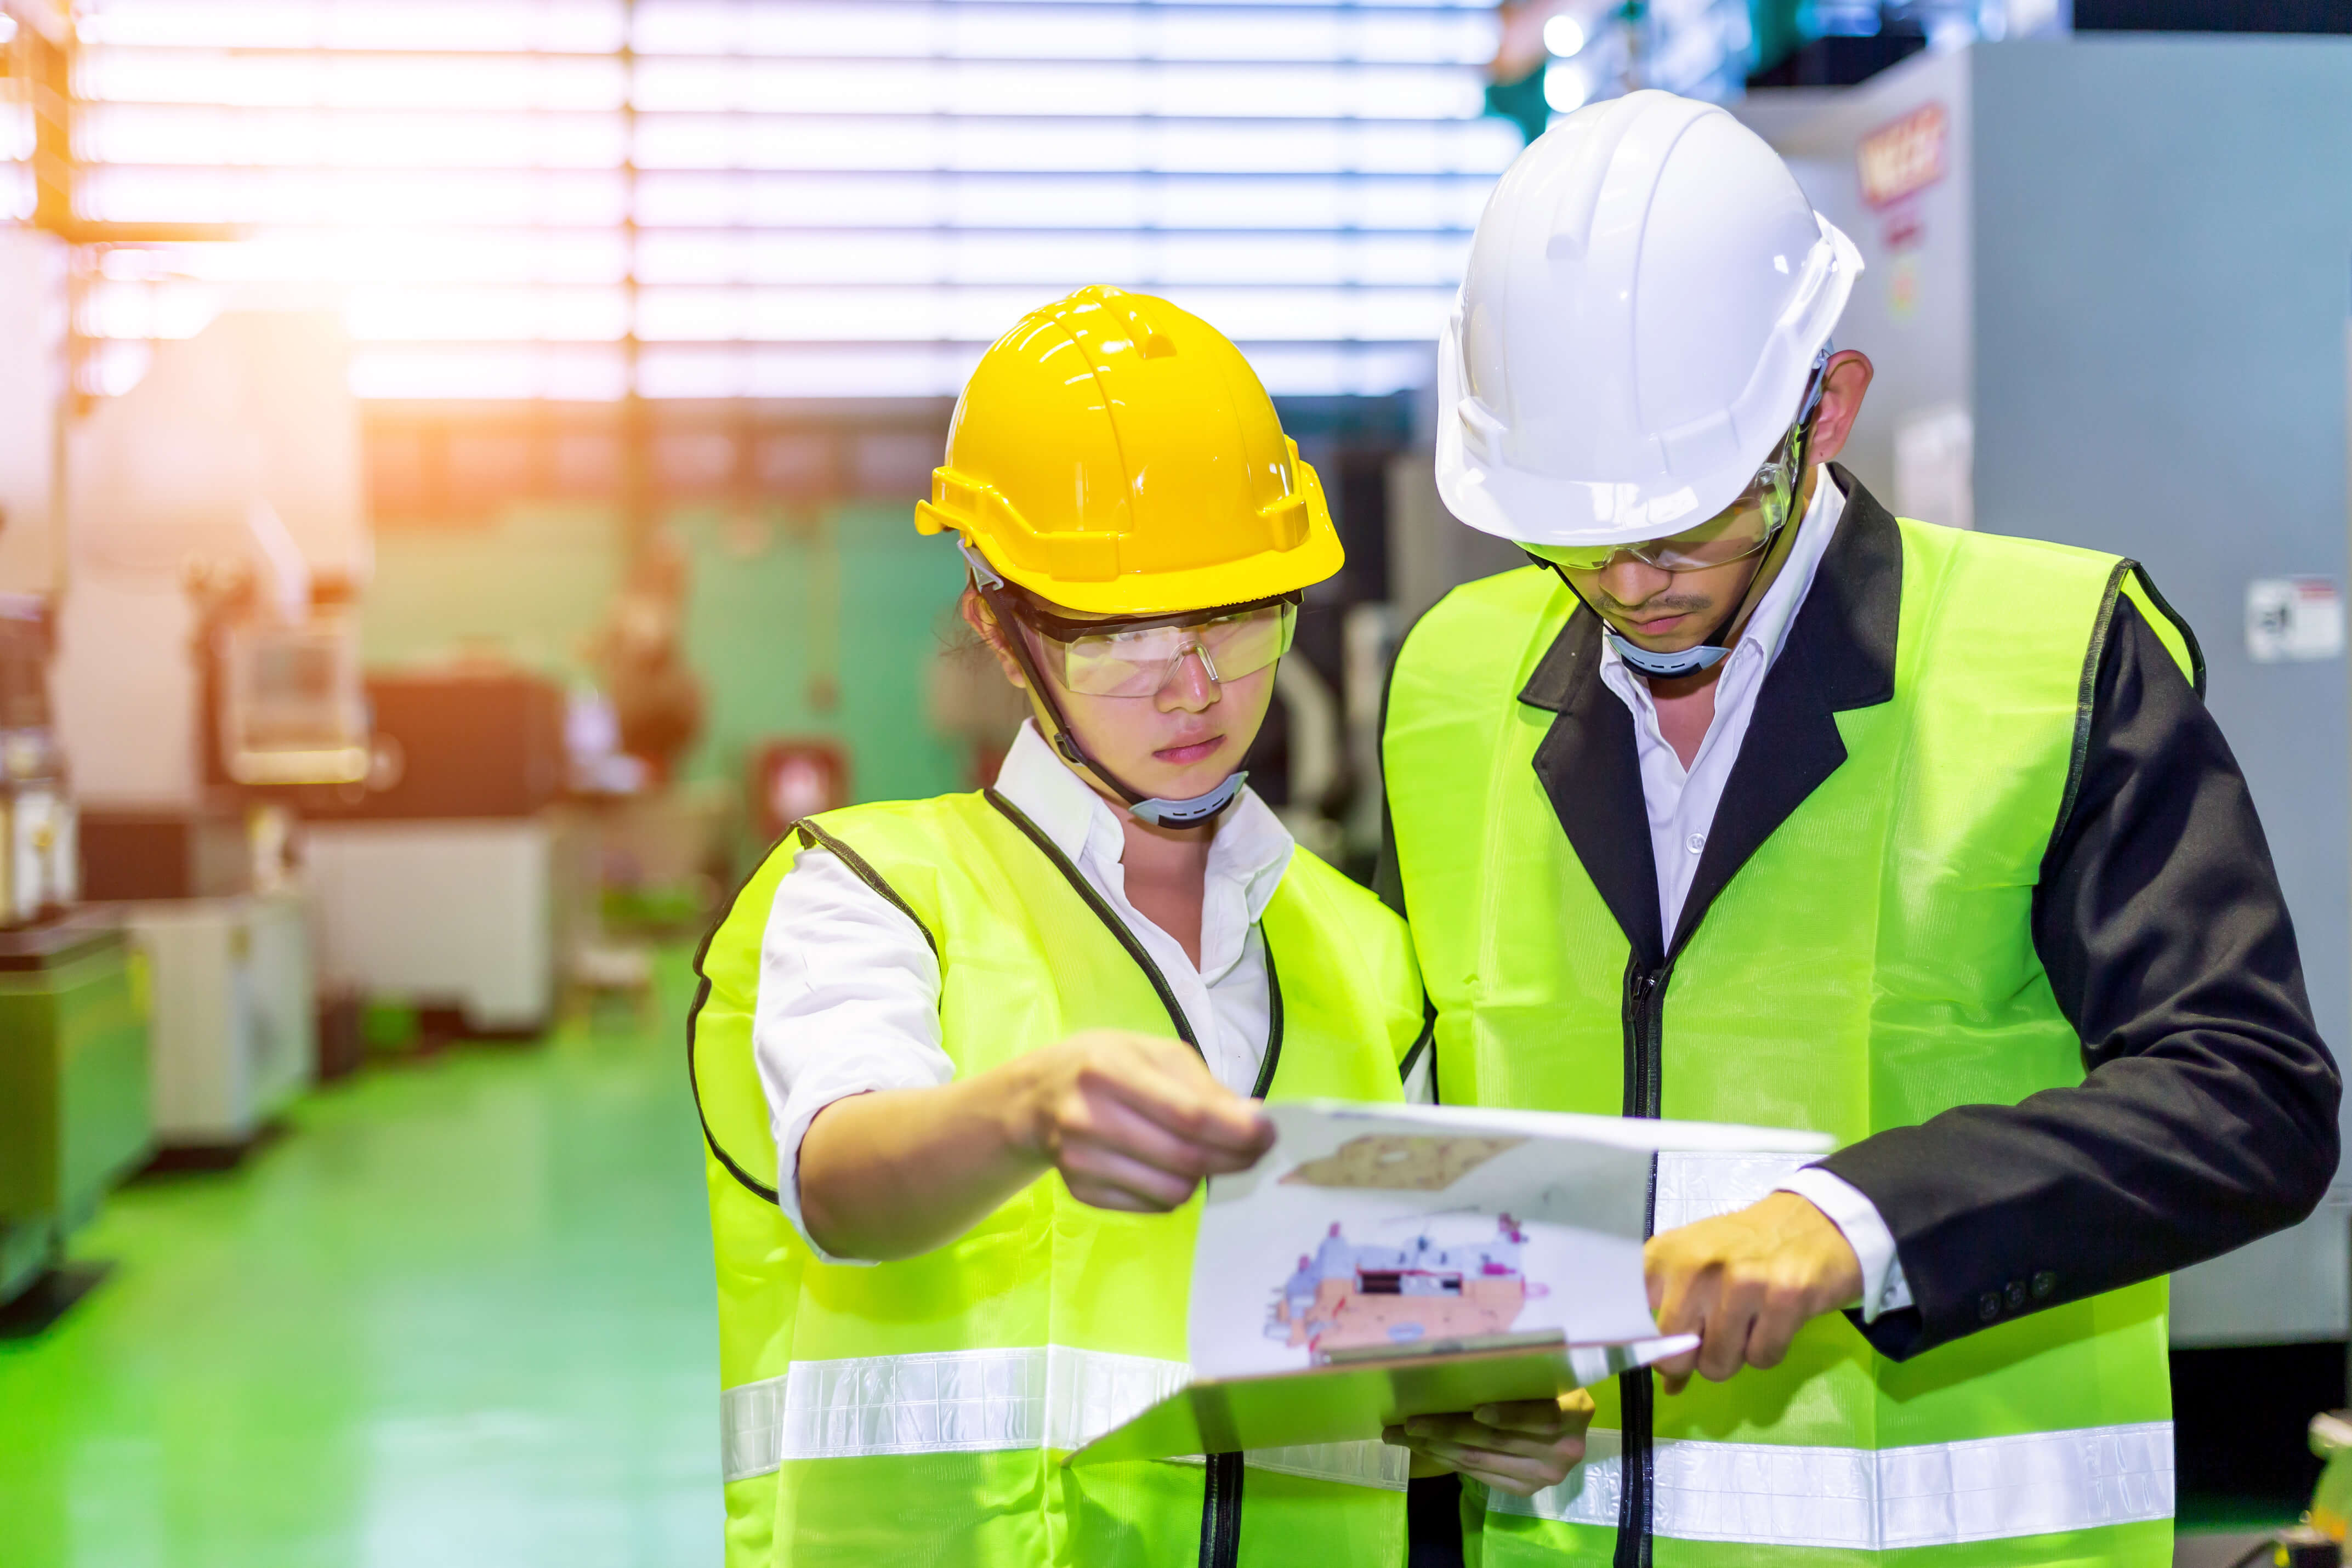 Male and female maintenance worker holding plans in maintenance setting. Photo